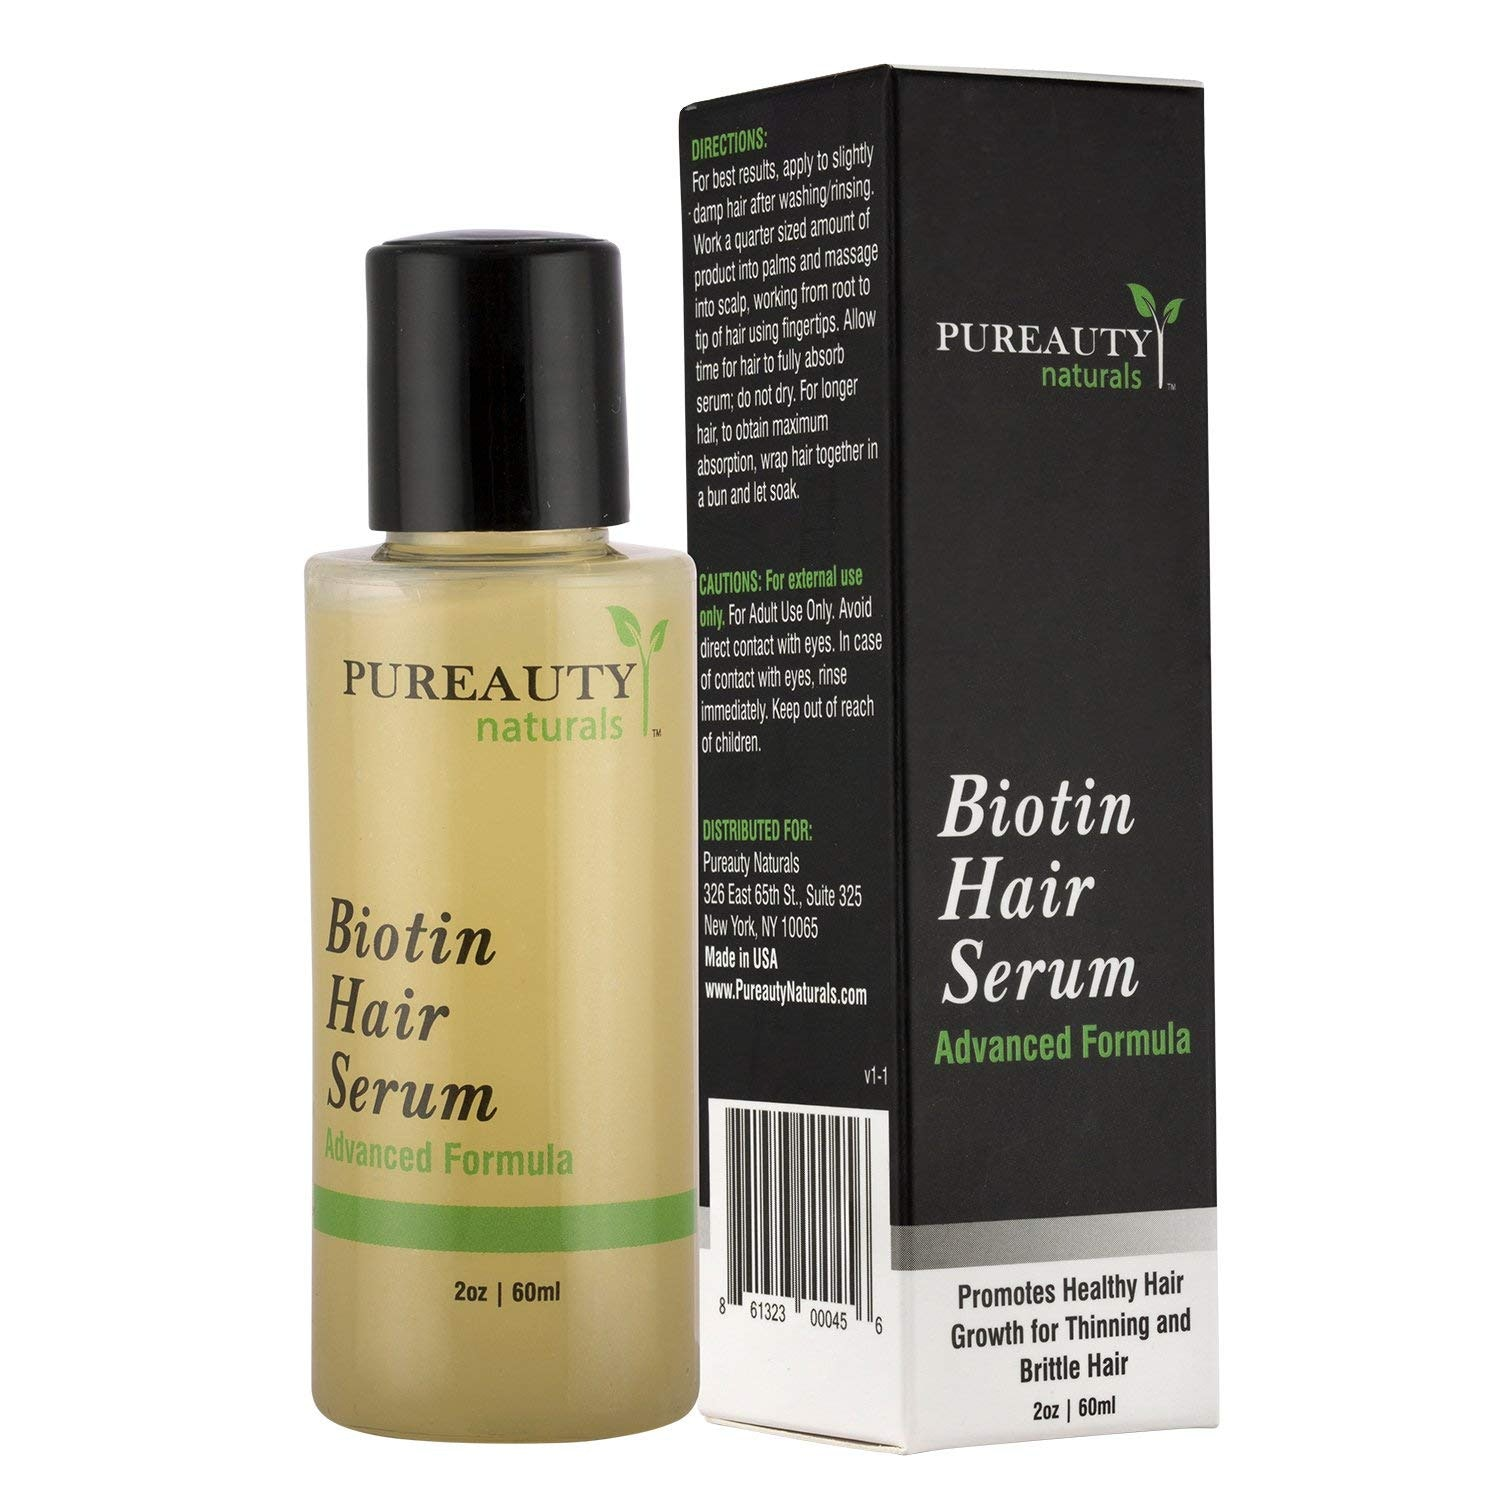 Top Rated Hair Serum - The Facts